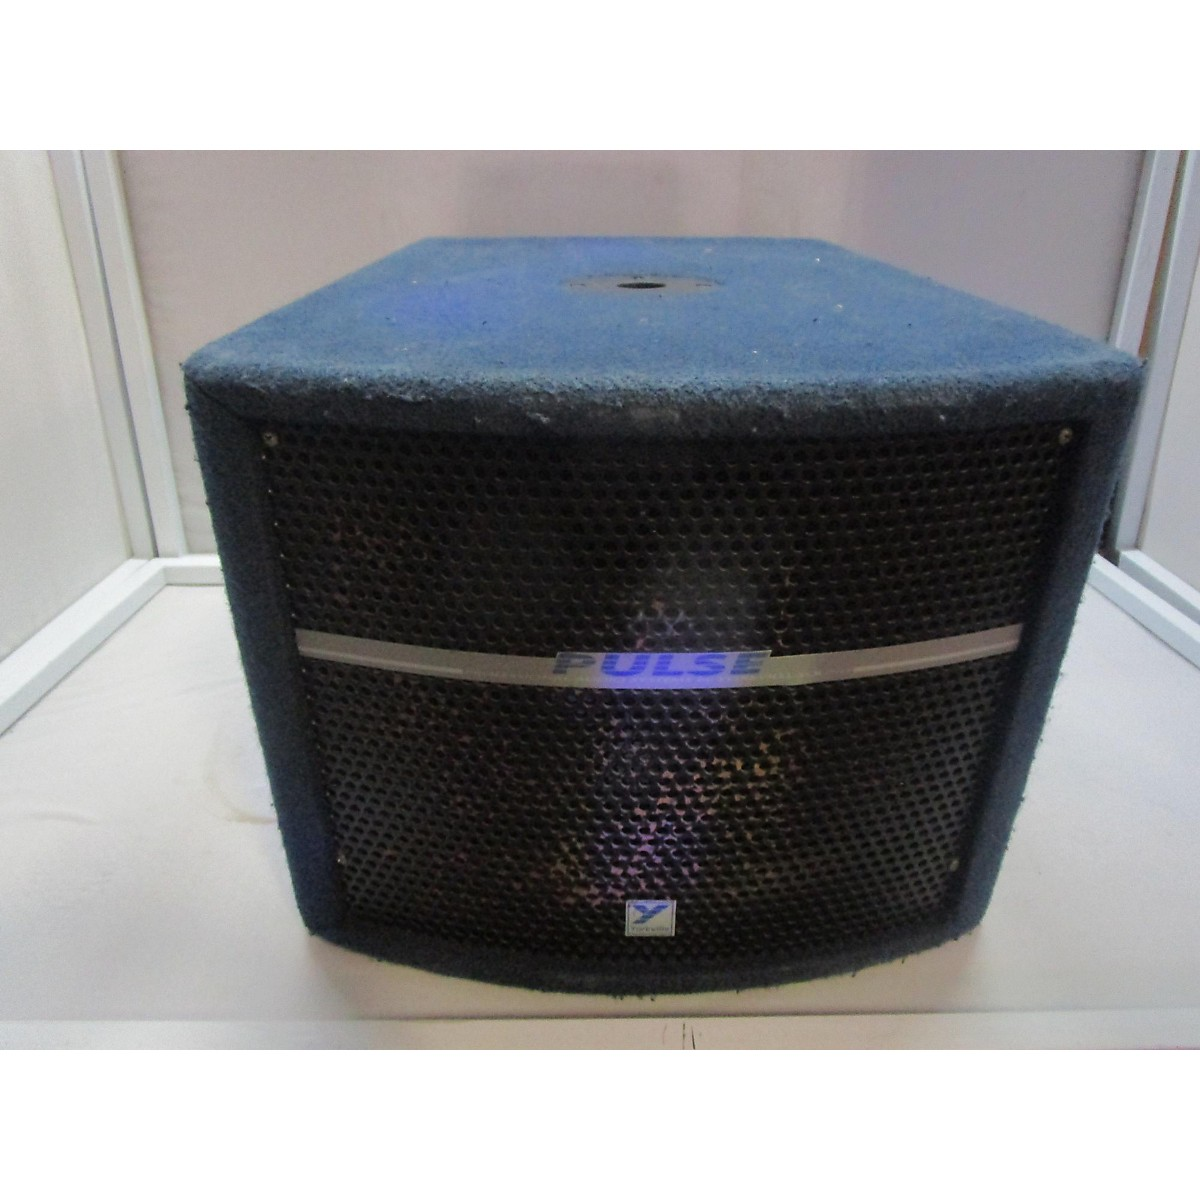 Yorkville PS110P Powered Subwoofer